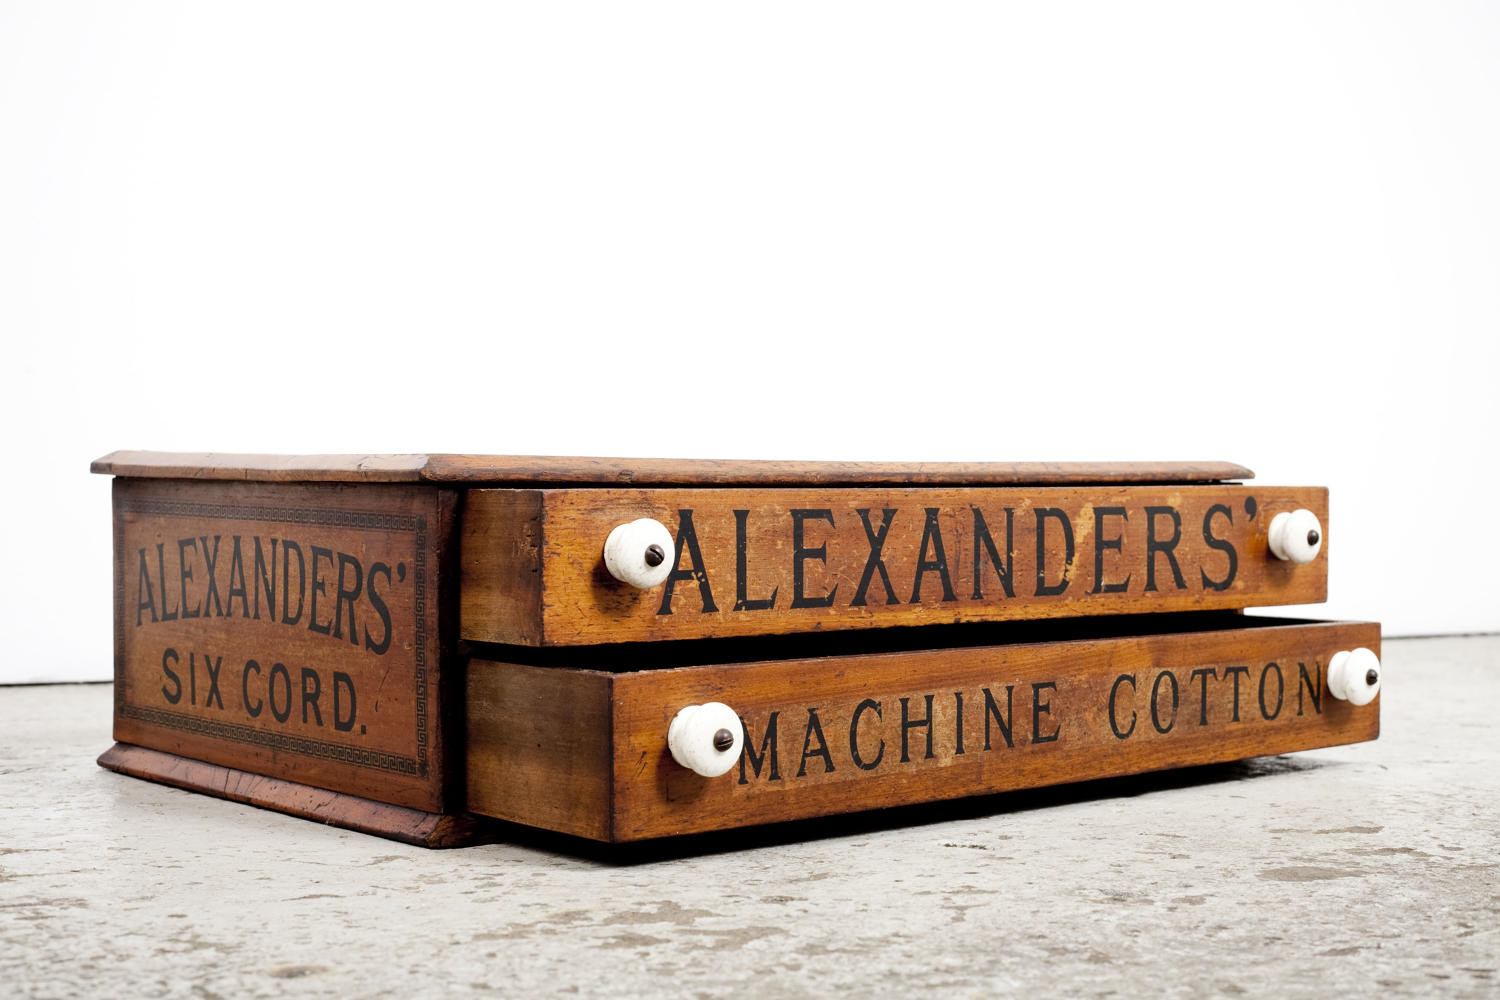 Antique two drawer shop display cabinet for Alexanders' Machine Cotton